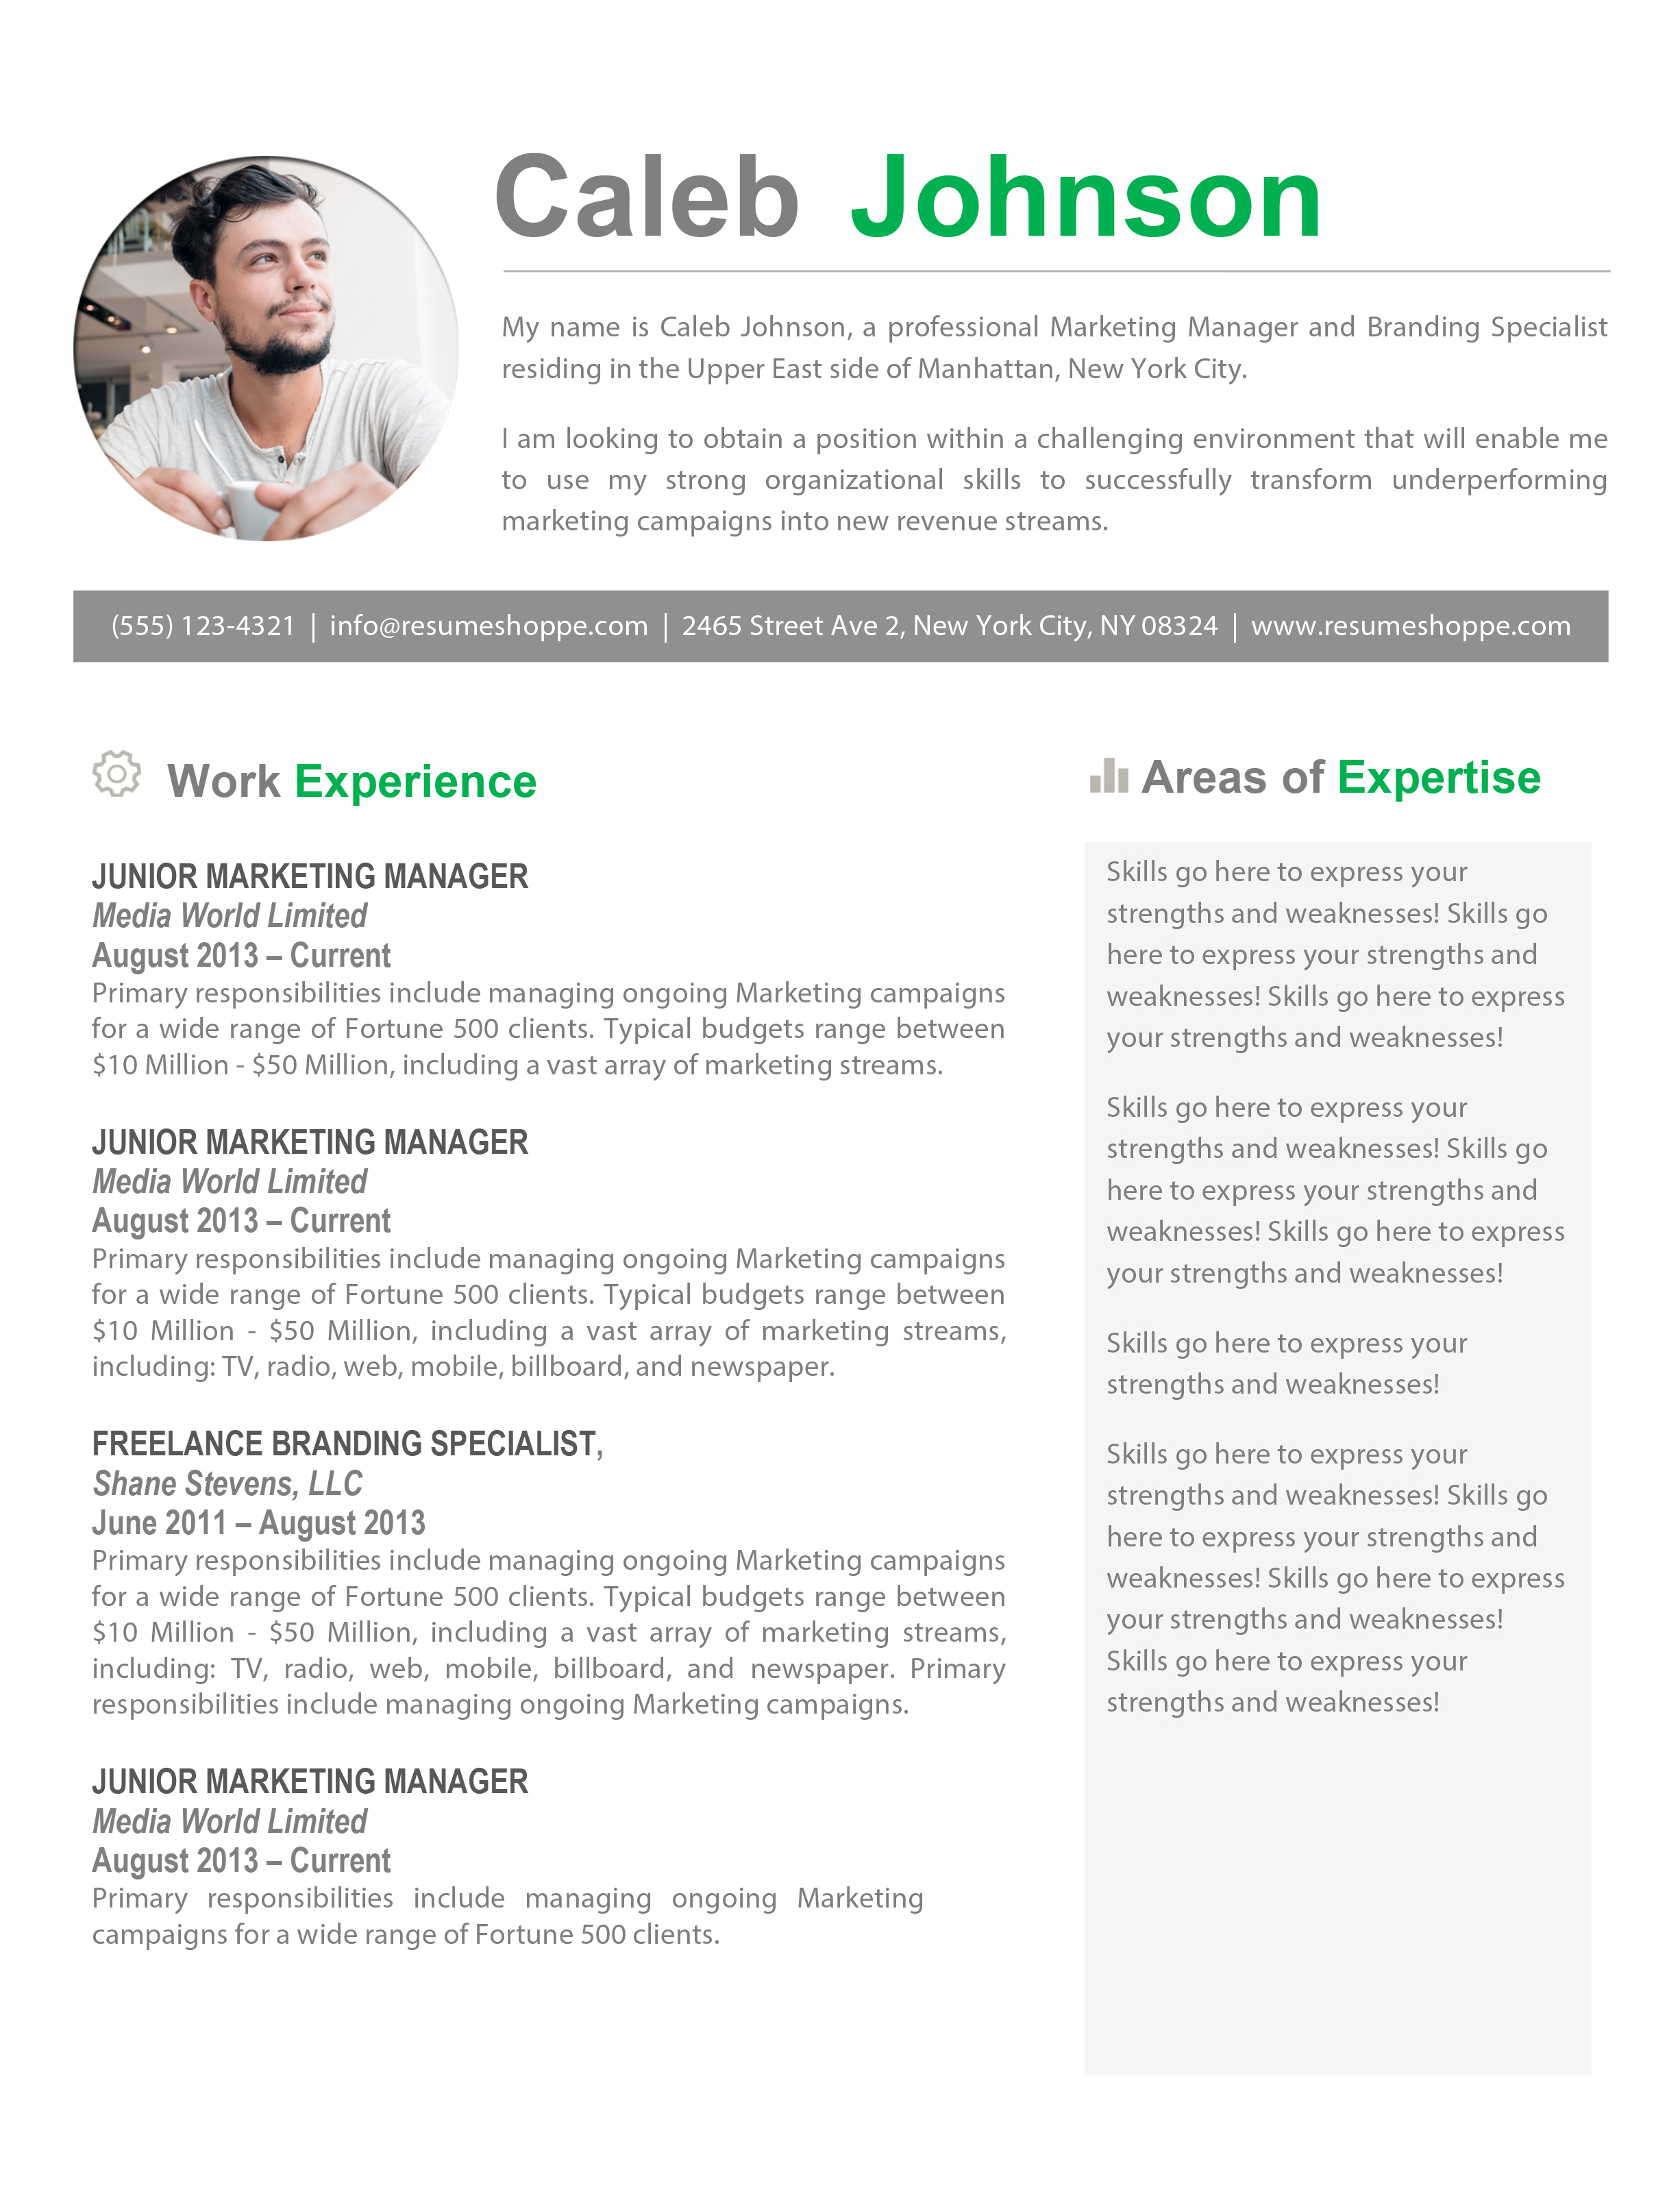 Resumeshoppe  Resume Template For Mac